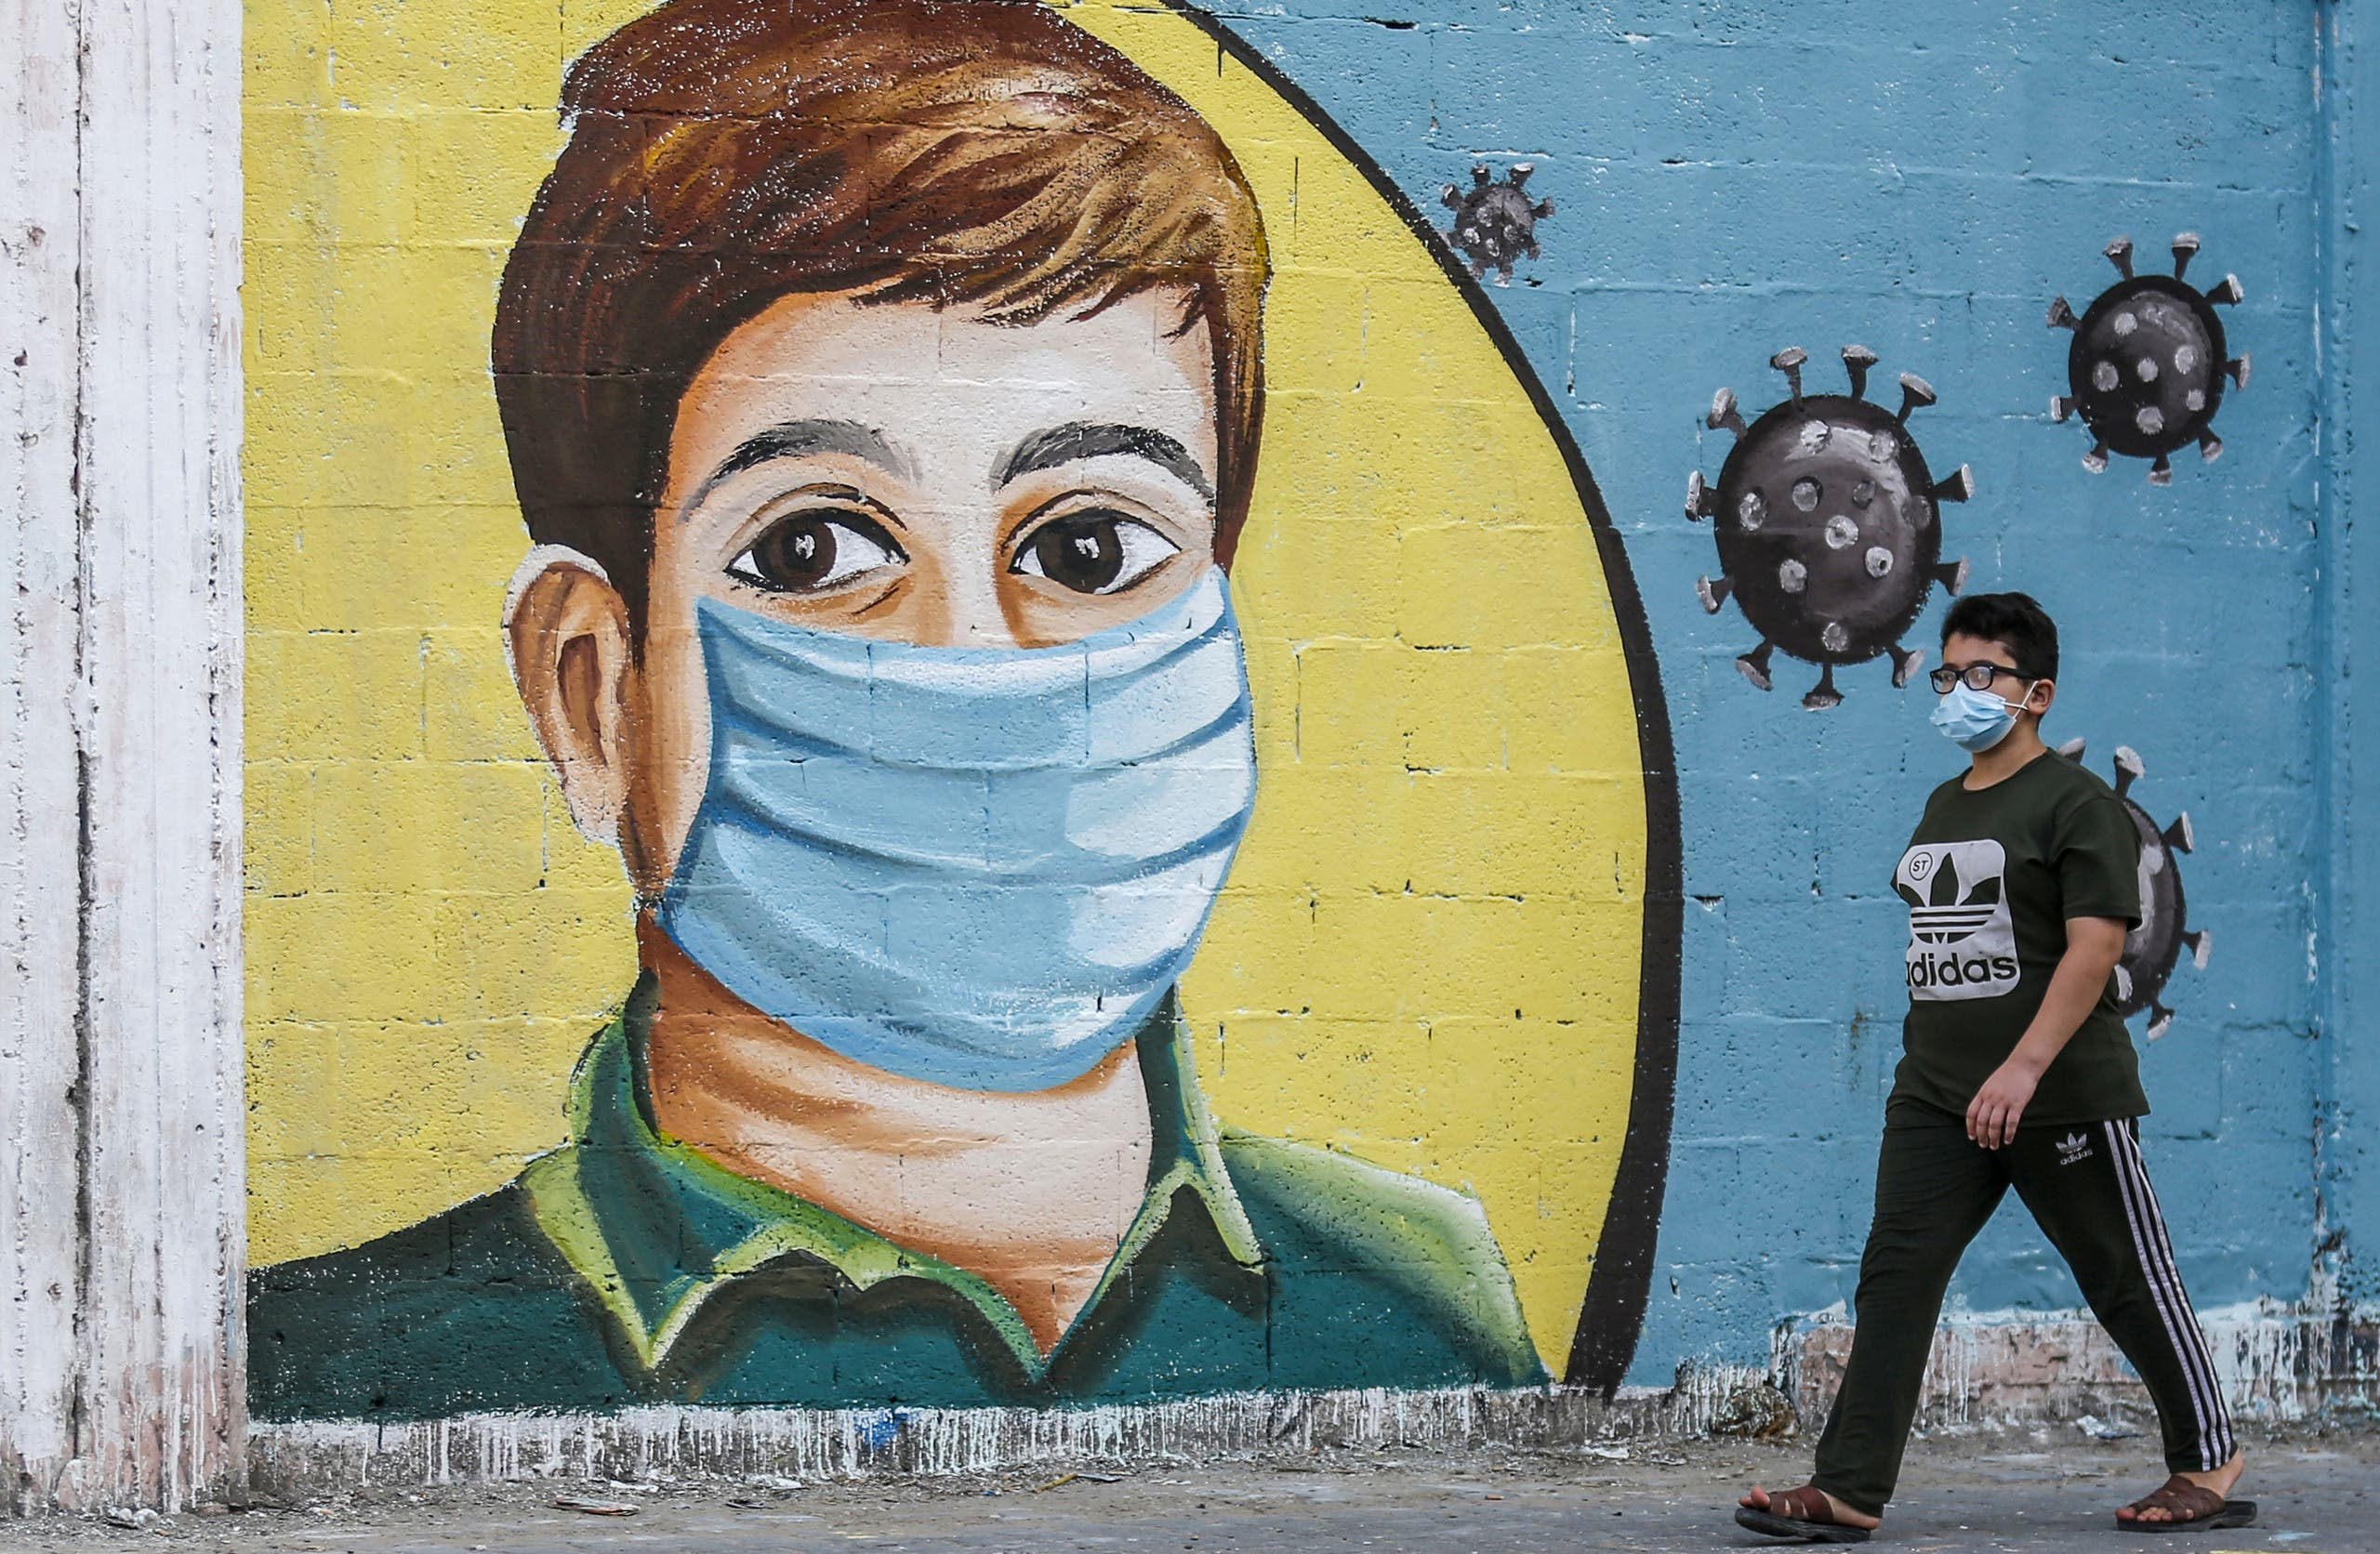 A Palestinian boy walks past a coronavirus awareness mural in Rafah in the southern Gaza Strip on September 14, 2020. (AFP)